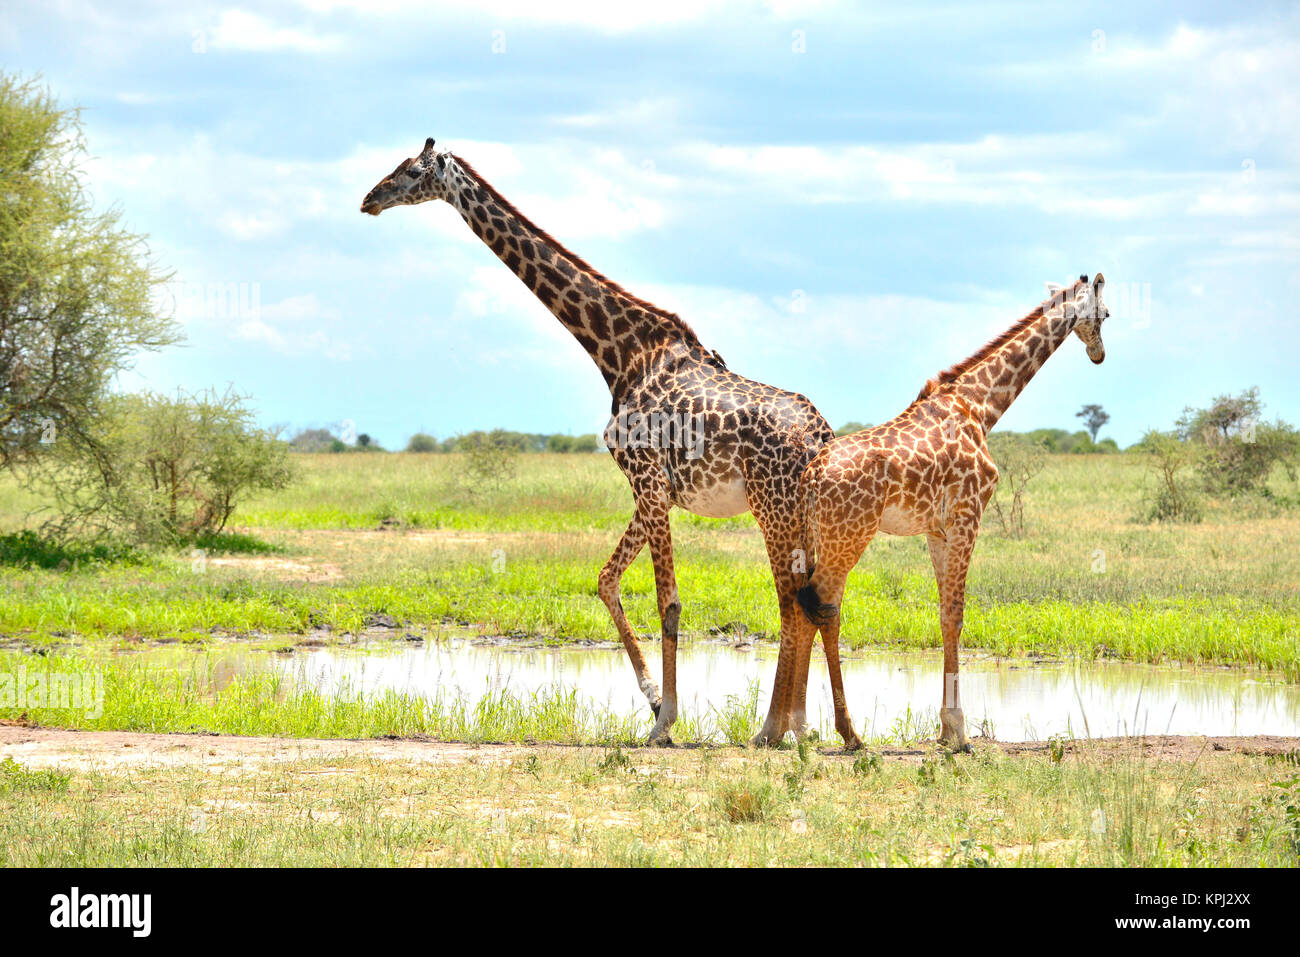 Tarangire national park in Tanzania is an undiscovered jewel with beautiful scenery along the Tarangire river. Giraffe - Stock Image